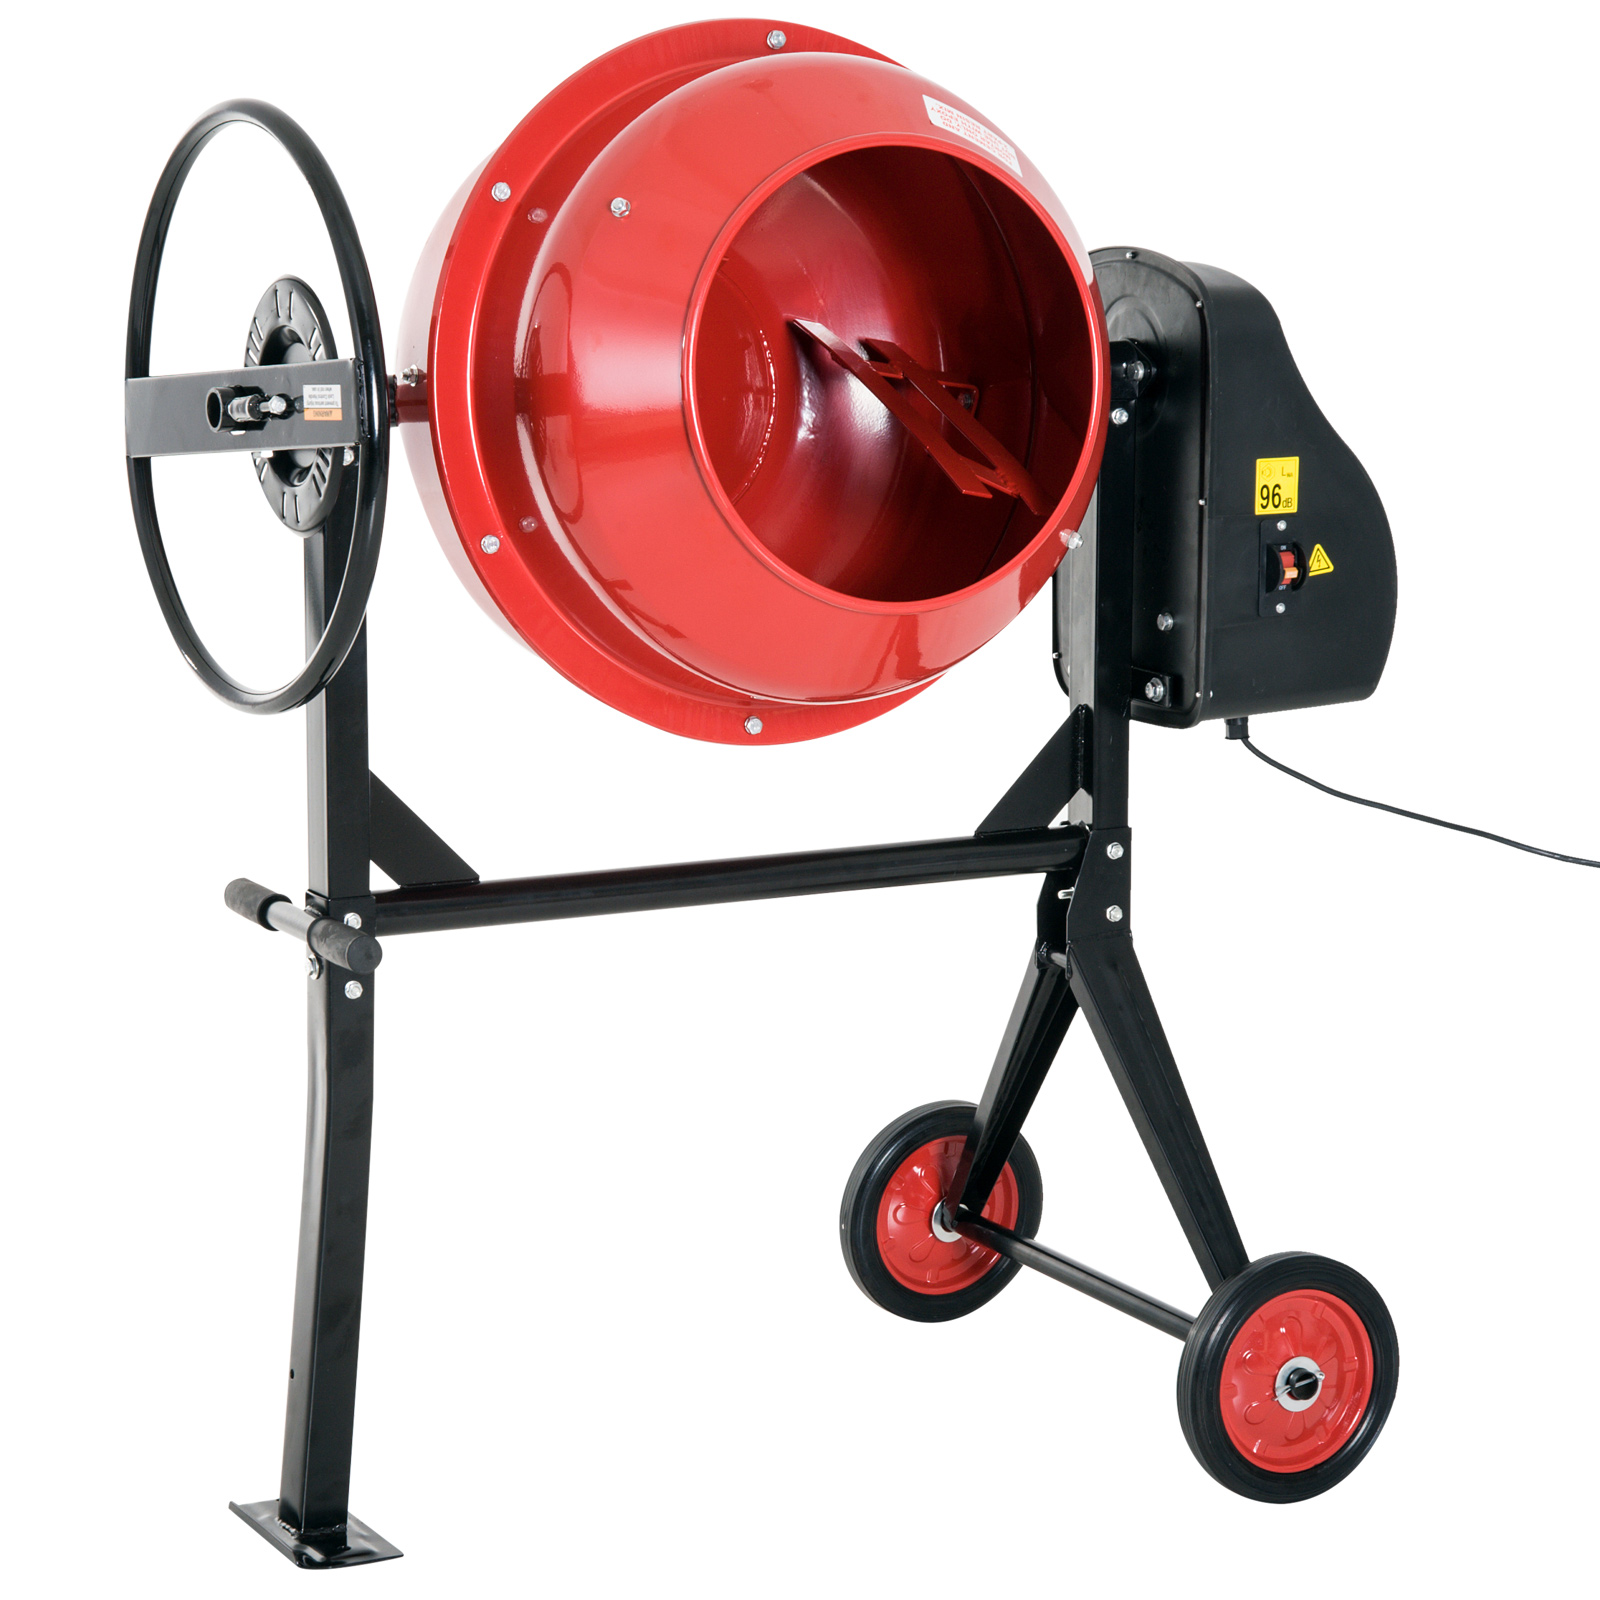 DURHAND 4.4Cu Ft 3 4HP Portable Electric Cement Concrete Mixer Red Black by Aosom LLC